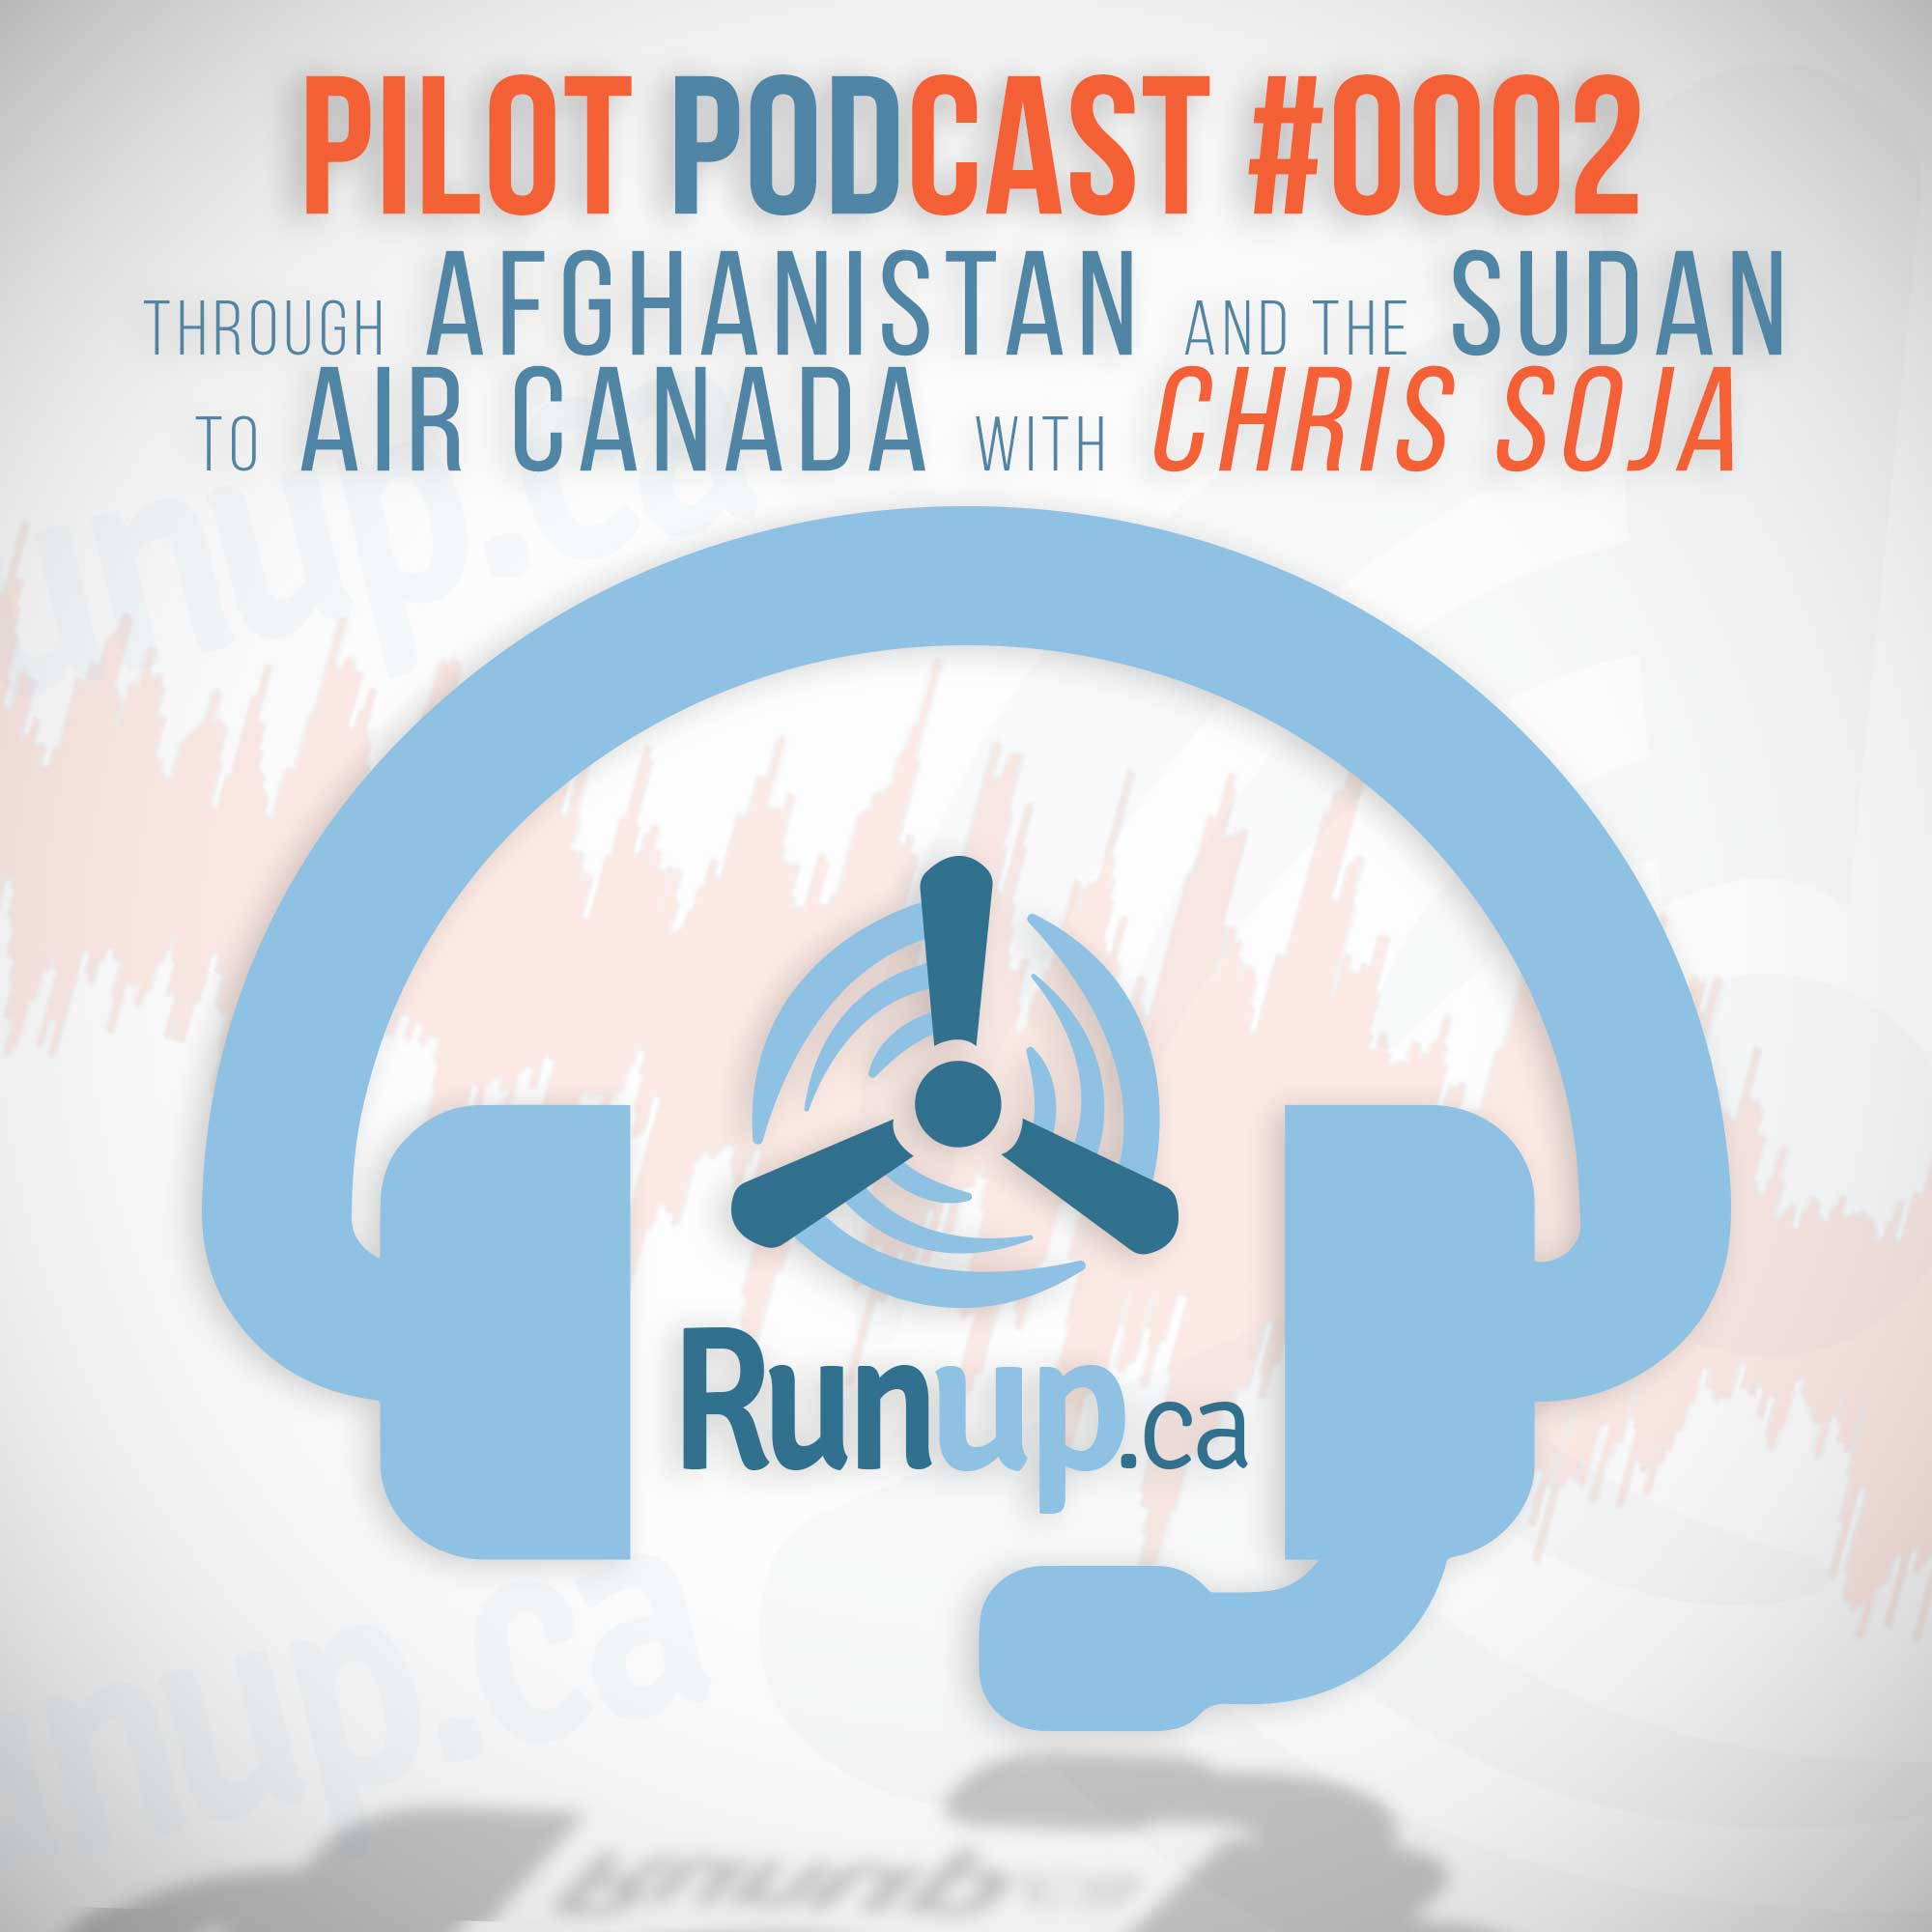 Pilot Podcast 0002 - Through Afghanistan and the Sudan to Air Canada with Chris Soja